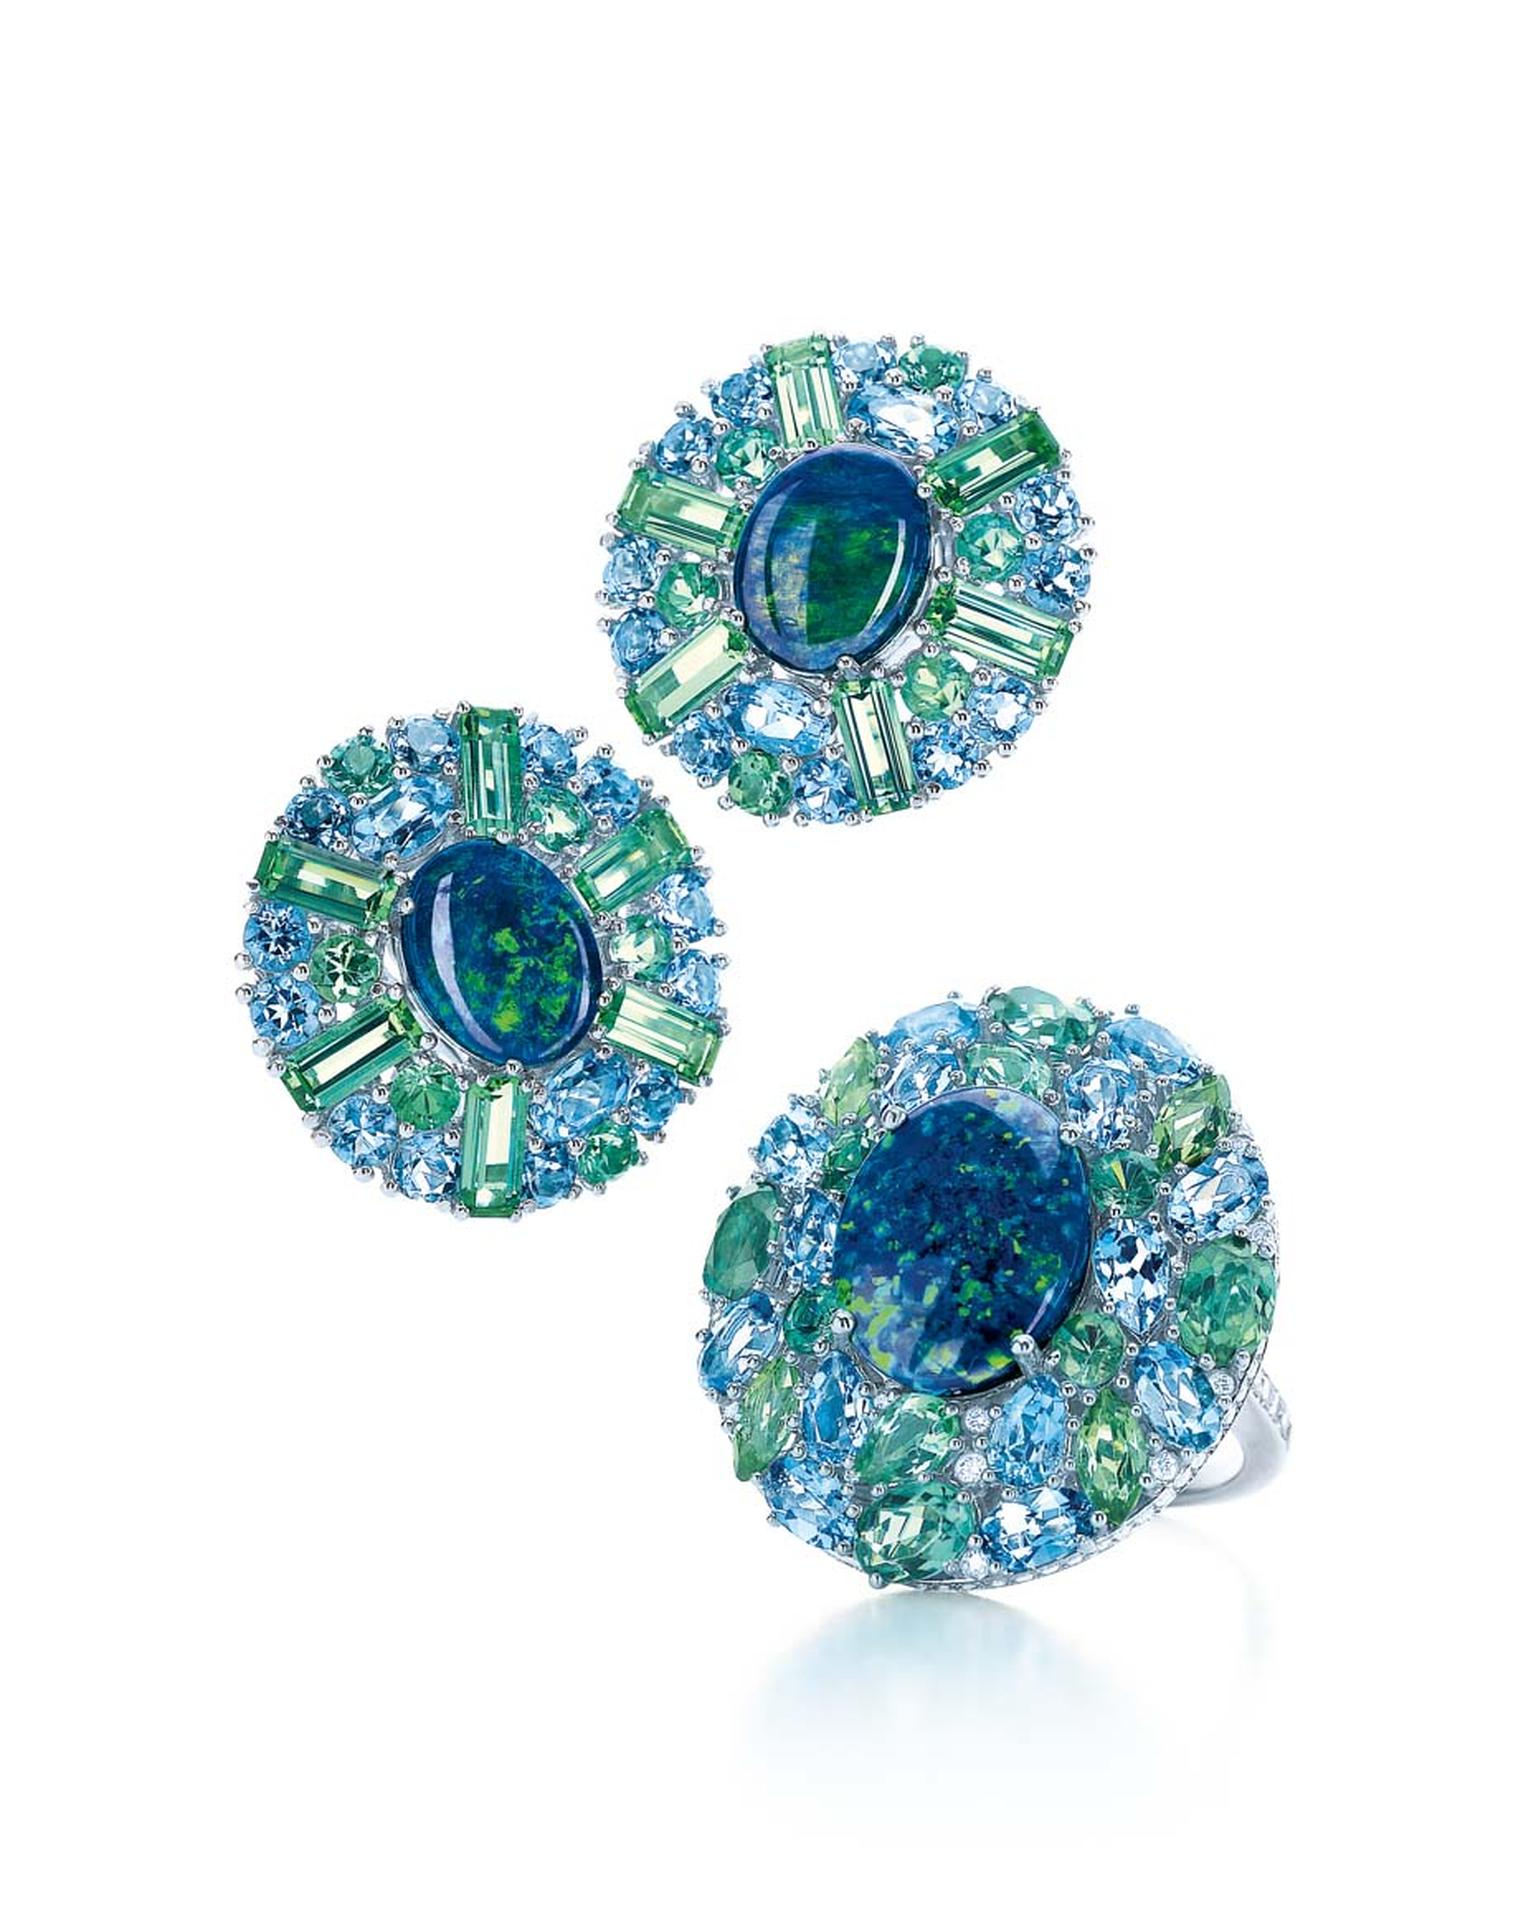 Tiffany & Co. black opal earrings and ring from the Blue Book collection with green tourmalines and aquamarines in platinum.